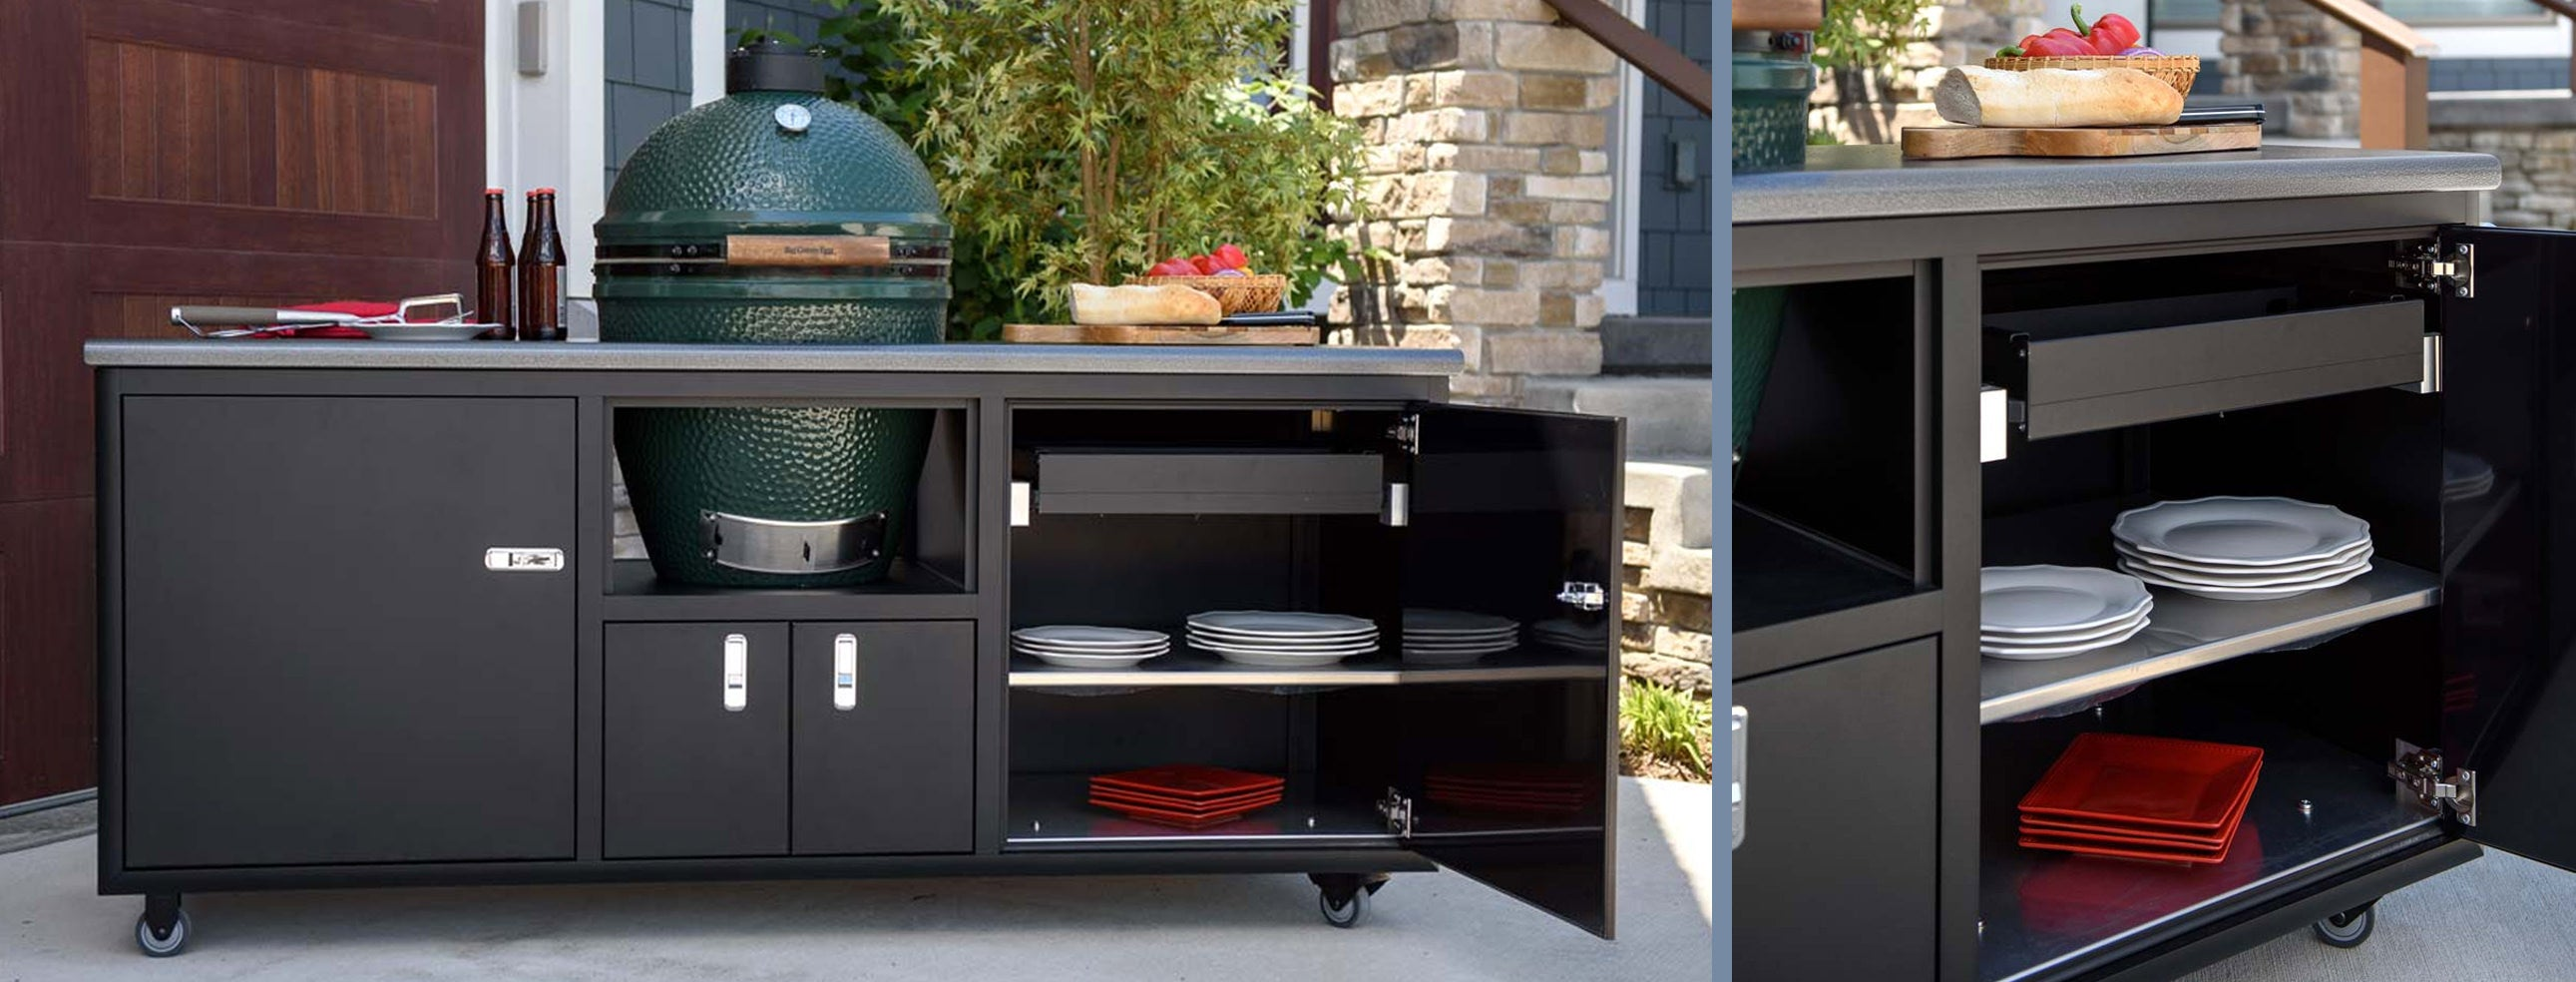 Challenger Designs Torch Grill Cart at BBQ Outfitters